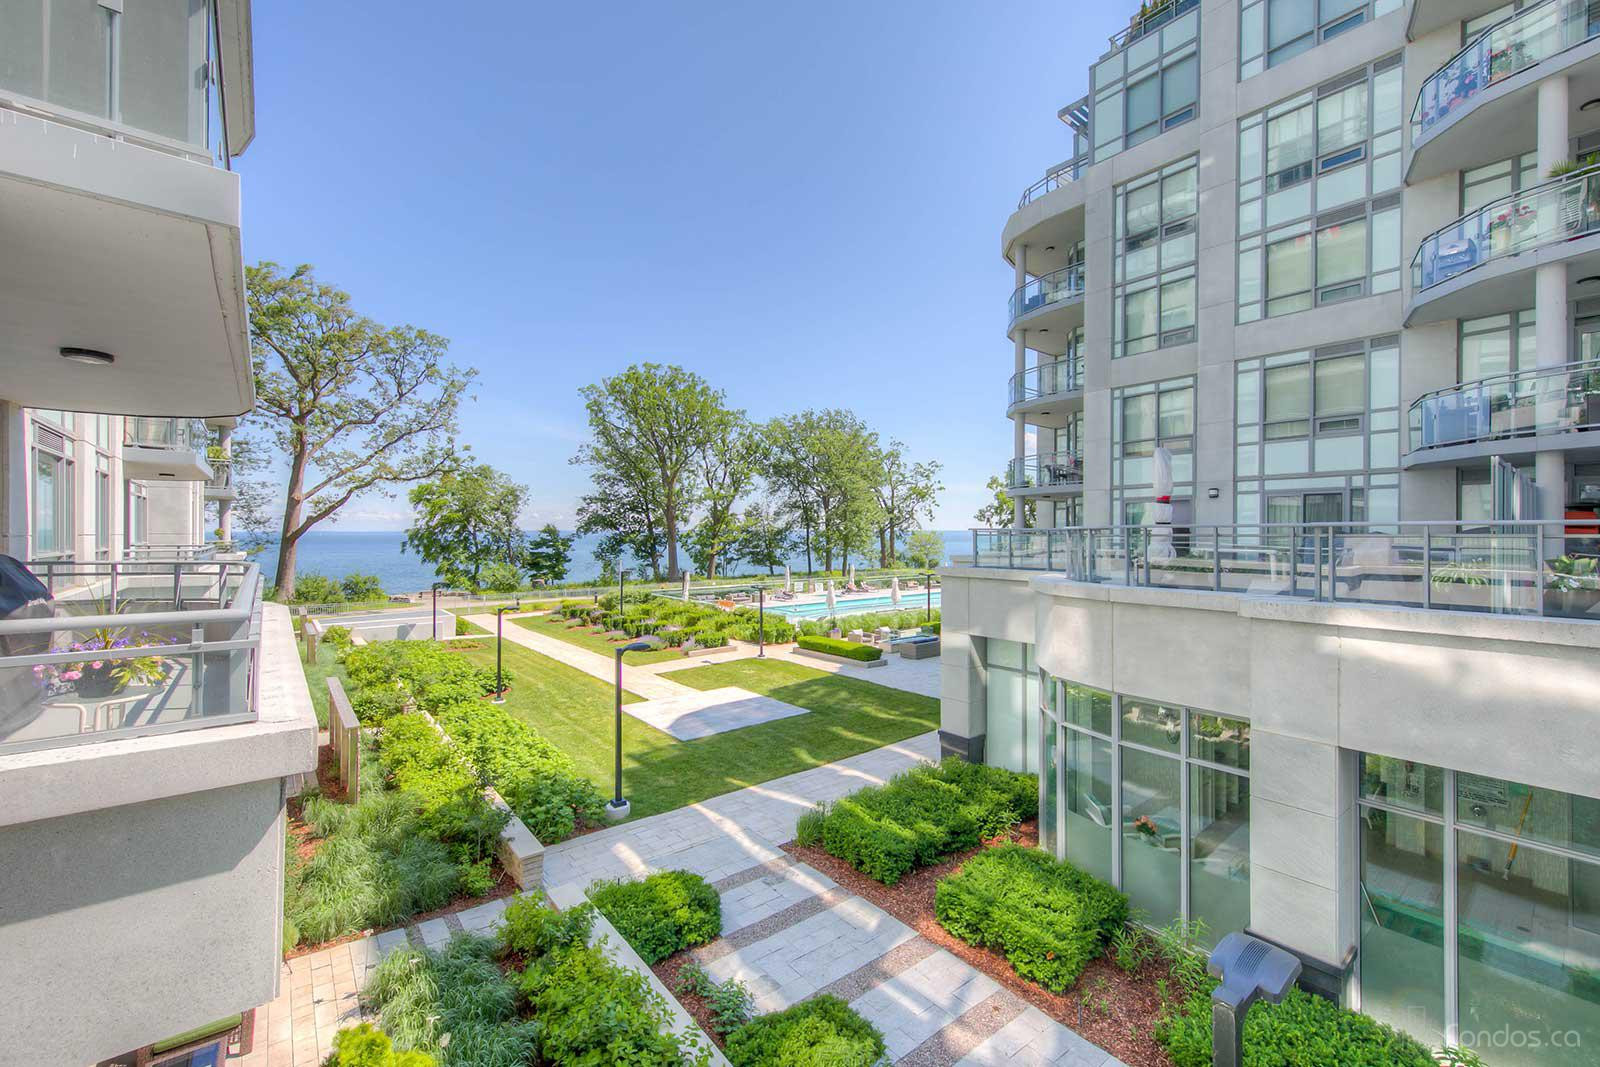 Bluwater Condos at 3500 Lakeshore Rd W, Oakville 1